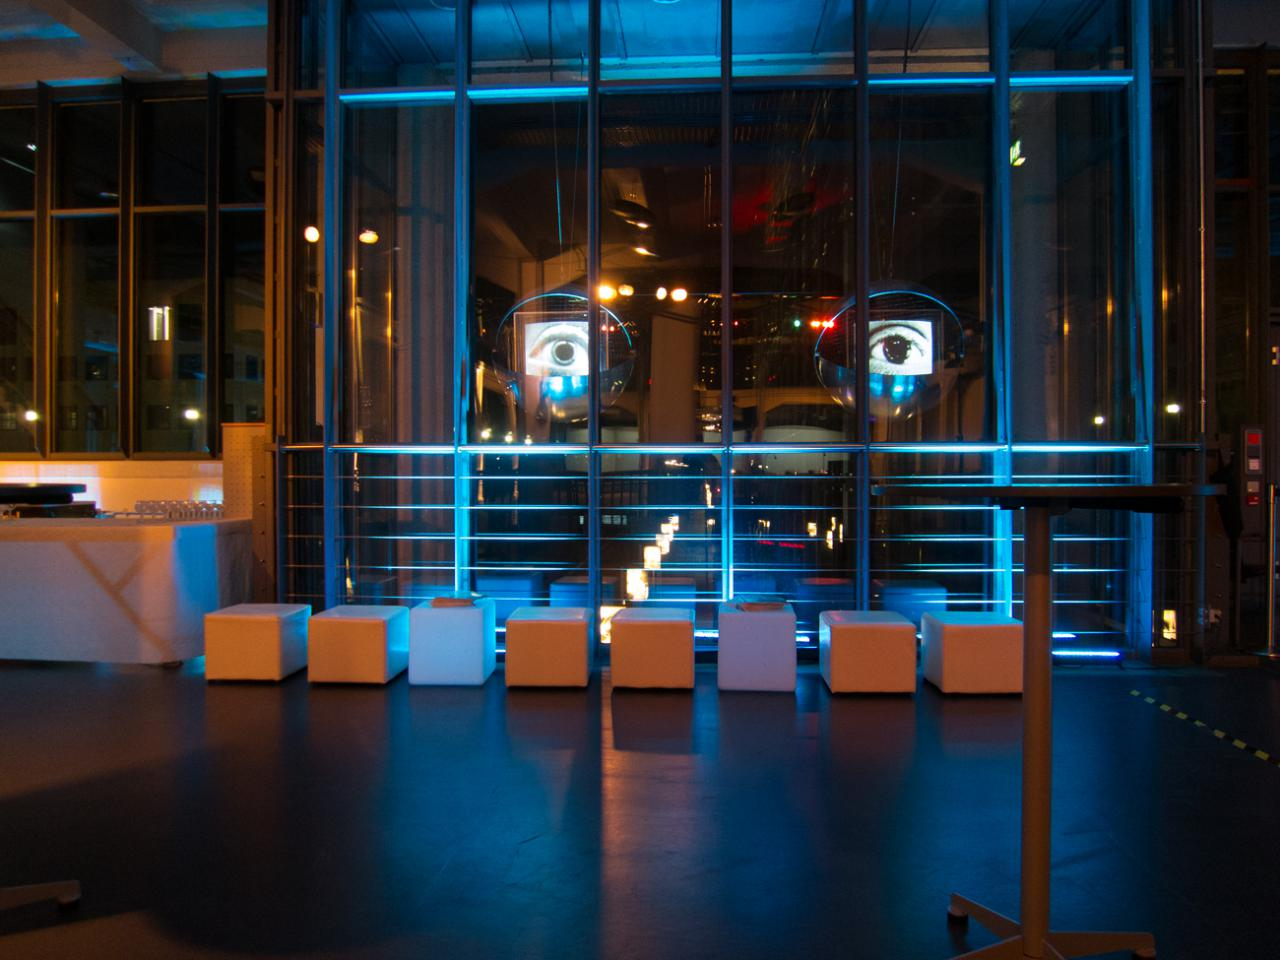 The ZKM_Music Balcony with stools at night